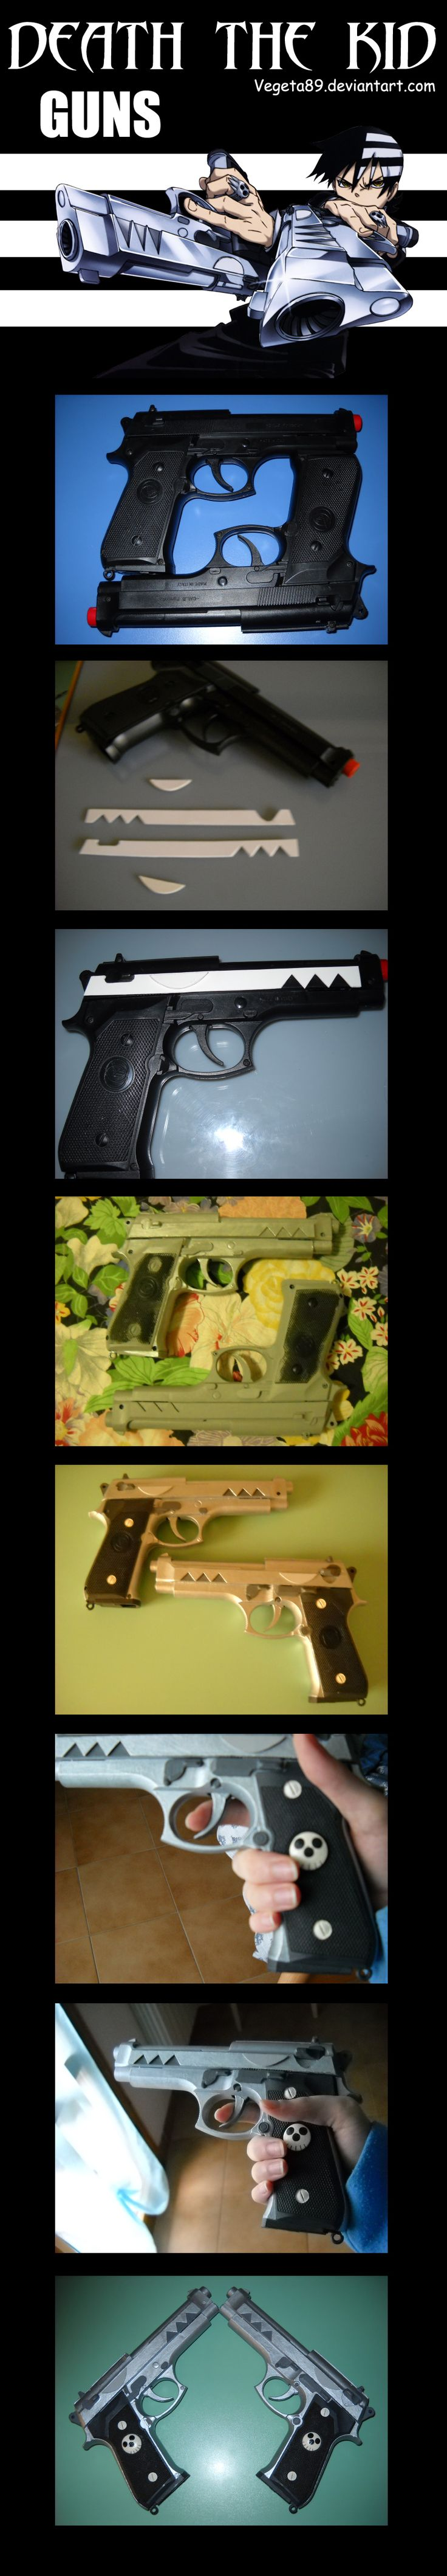 Death The Kid Guns Tutorial by ~Vegeta89 on deviantART